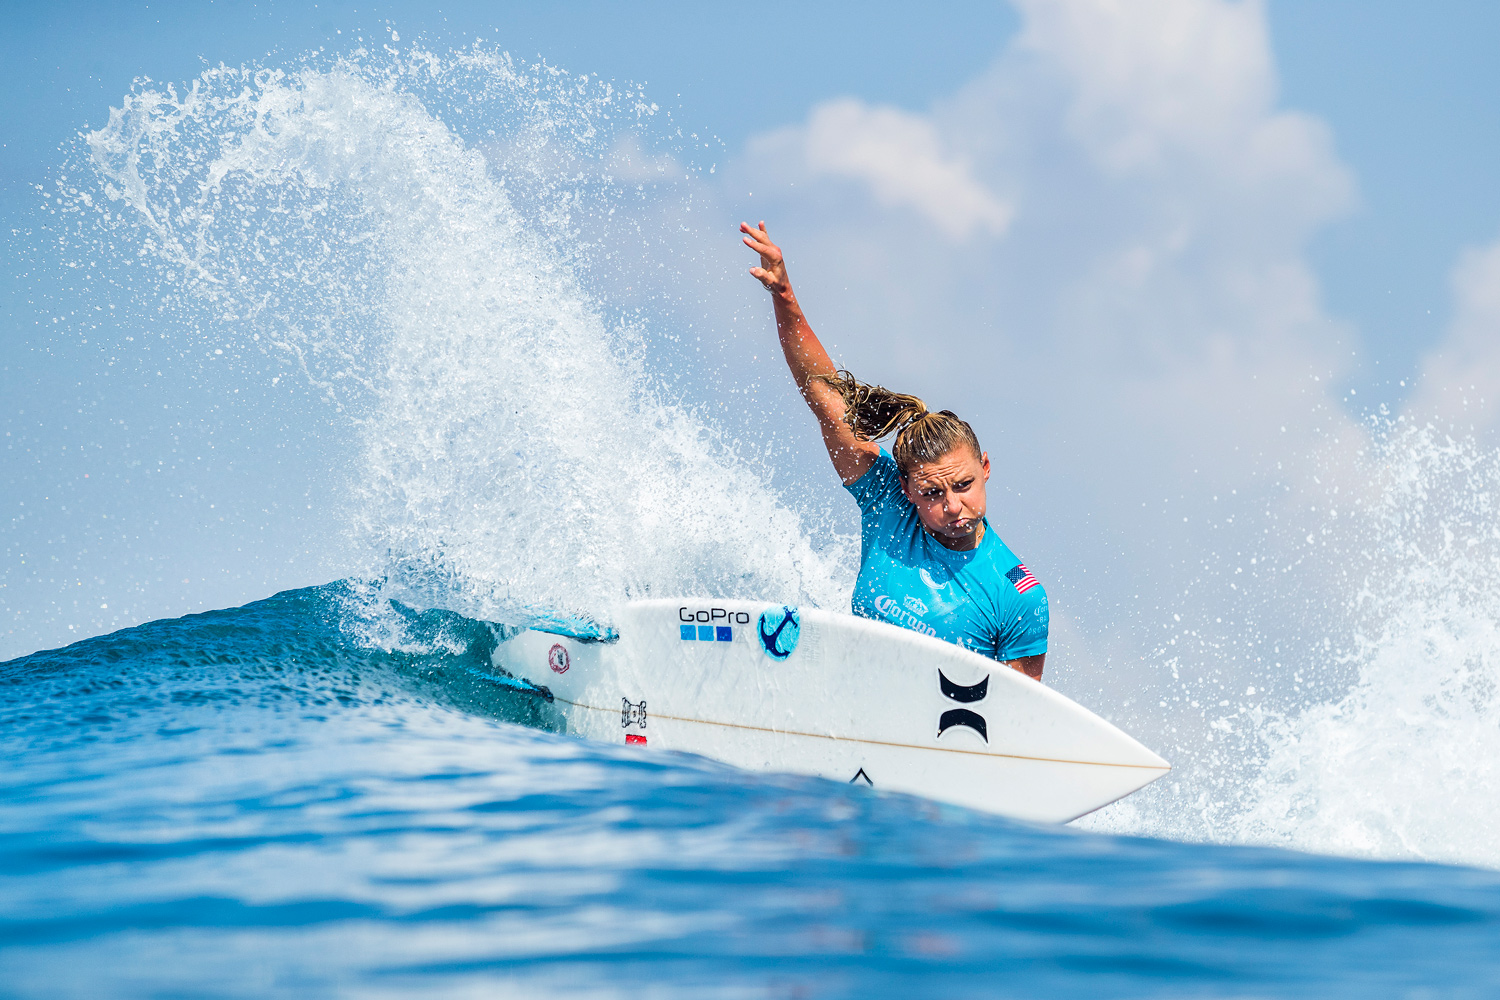 Lakey Peterson Corona Bali Pro photo by WSL/Cestari